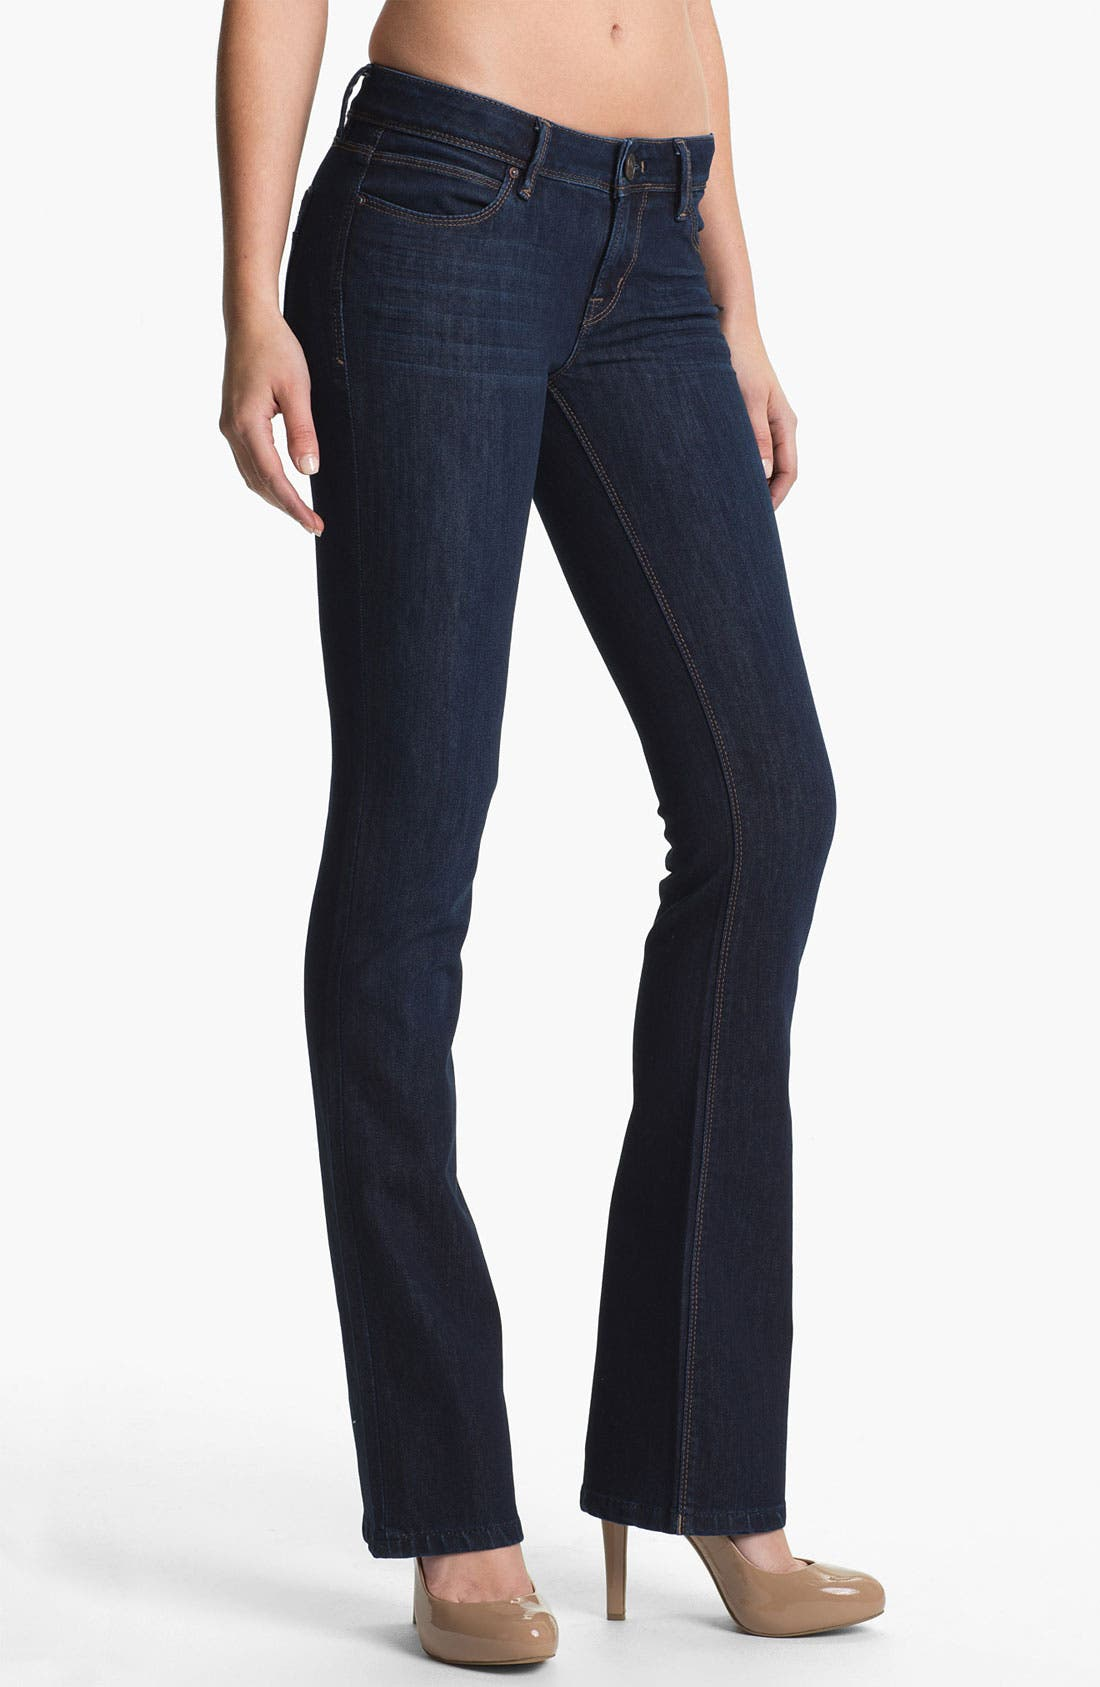 Main Image - DL1961 'Cindy' Slim Boot Jeans (Sonic)